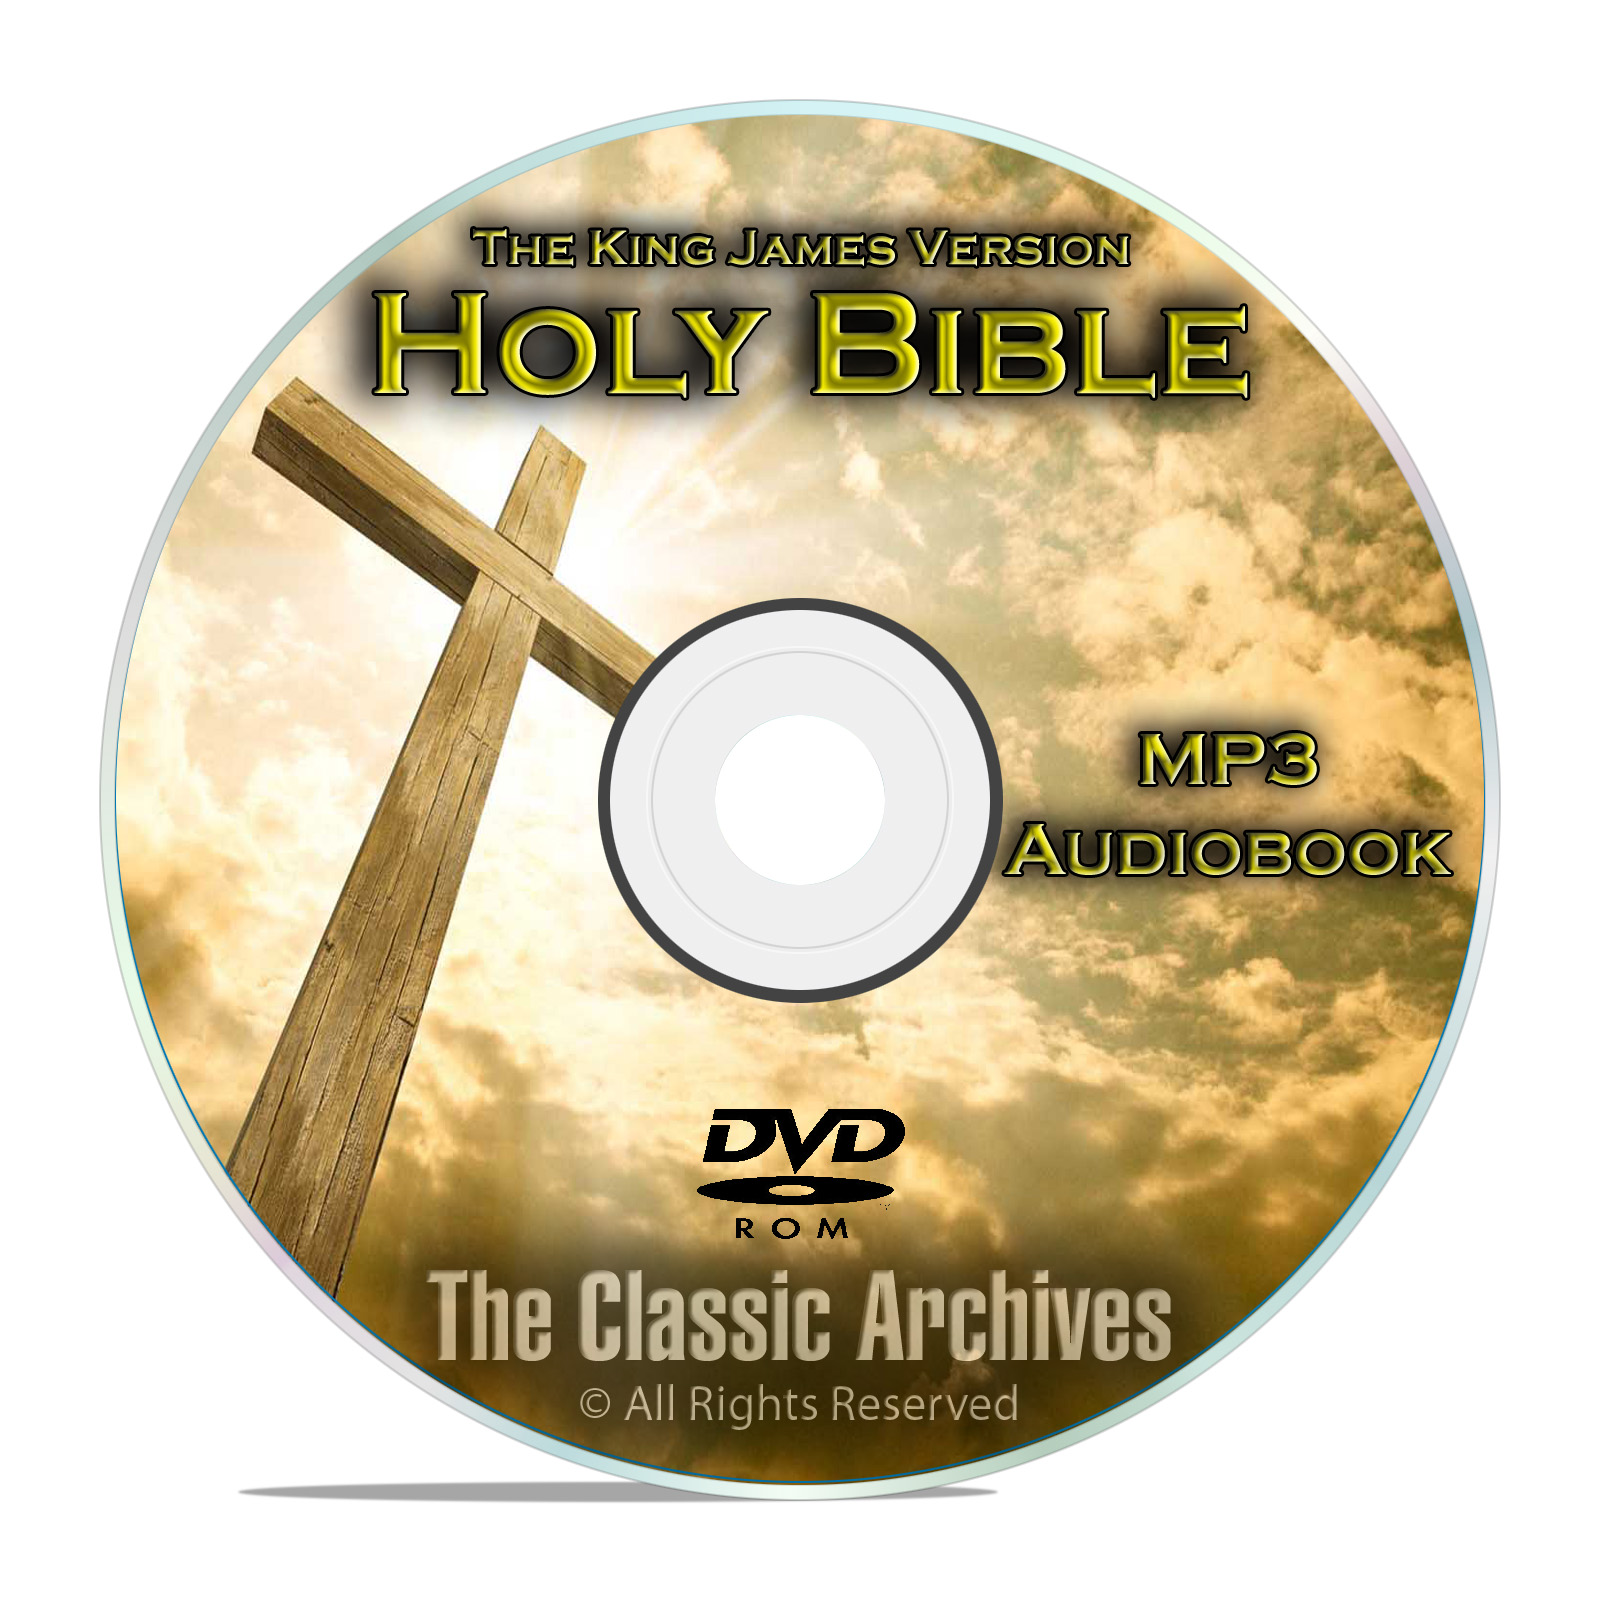 The Authorized King James Bible on MP3 Audiobook, KVJ, The Holy Bible DVD